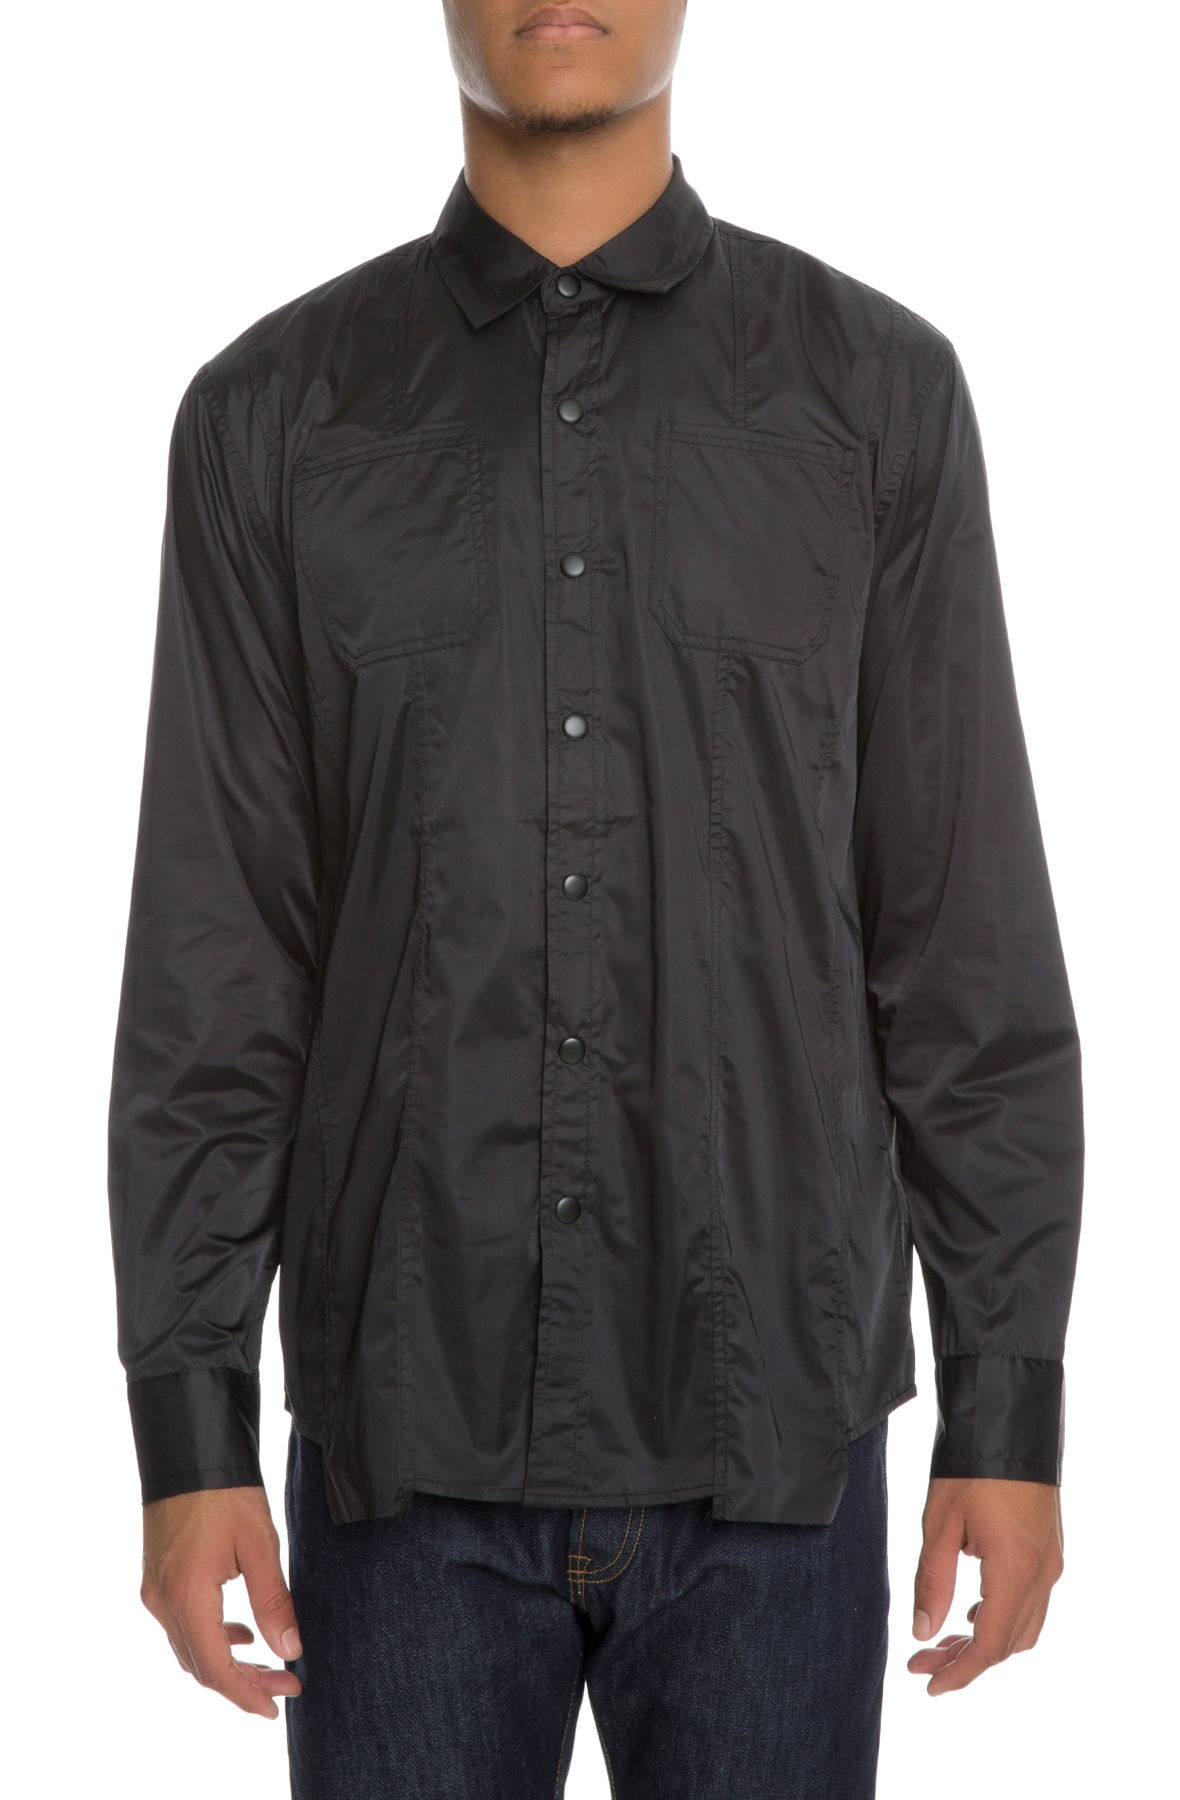 Image of The Falco Button Up in Vanta Black